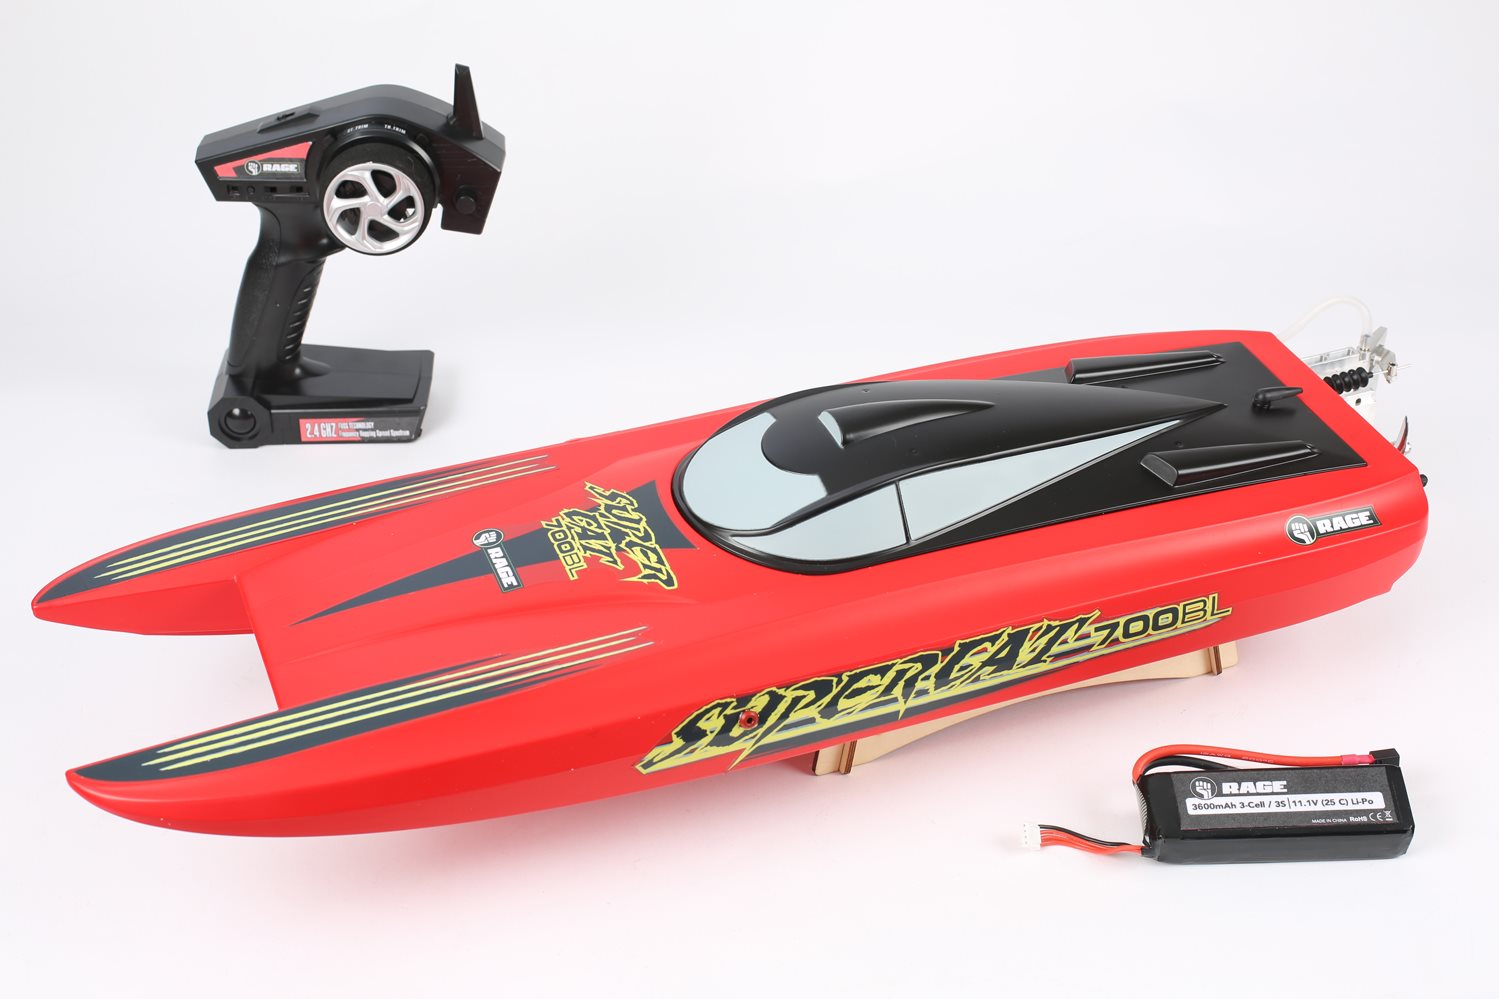 Rage RC Super Cat 700Bl Brushless Rtr Catamaran Boat